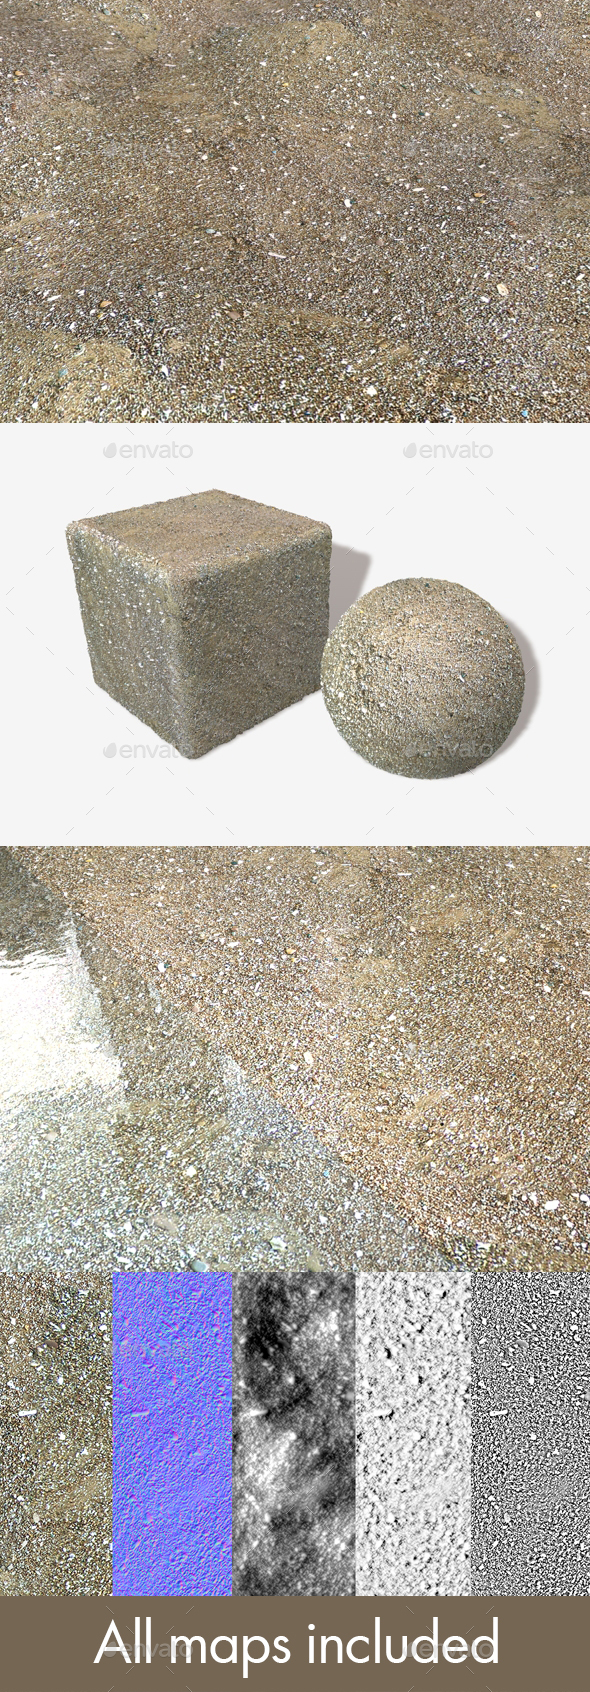 Damp Beach Seamless Texture - 3DOcean Item for Sale